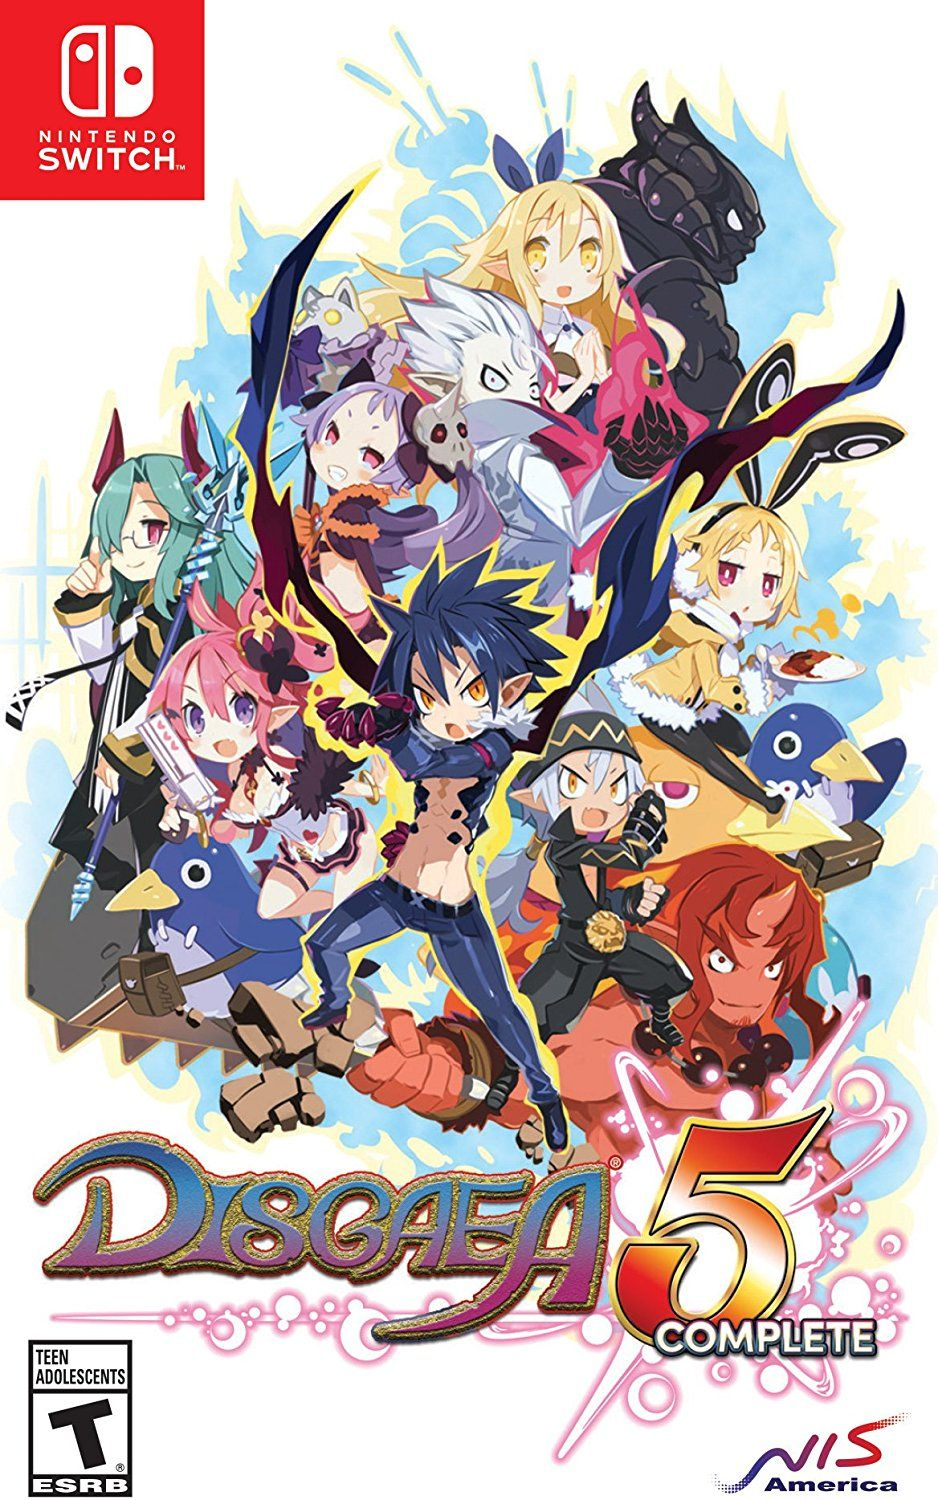 Pin By Michael Wagner On Disgaea In 2021 Disgaea Favorite Character Anime